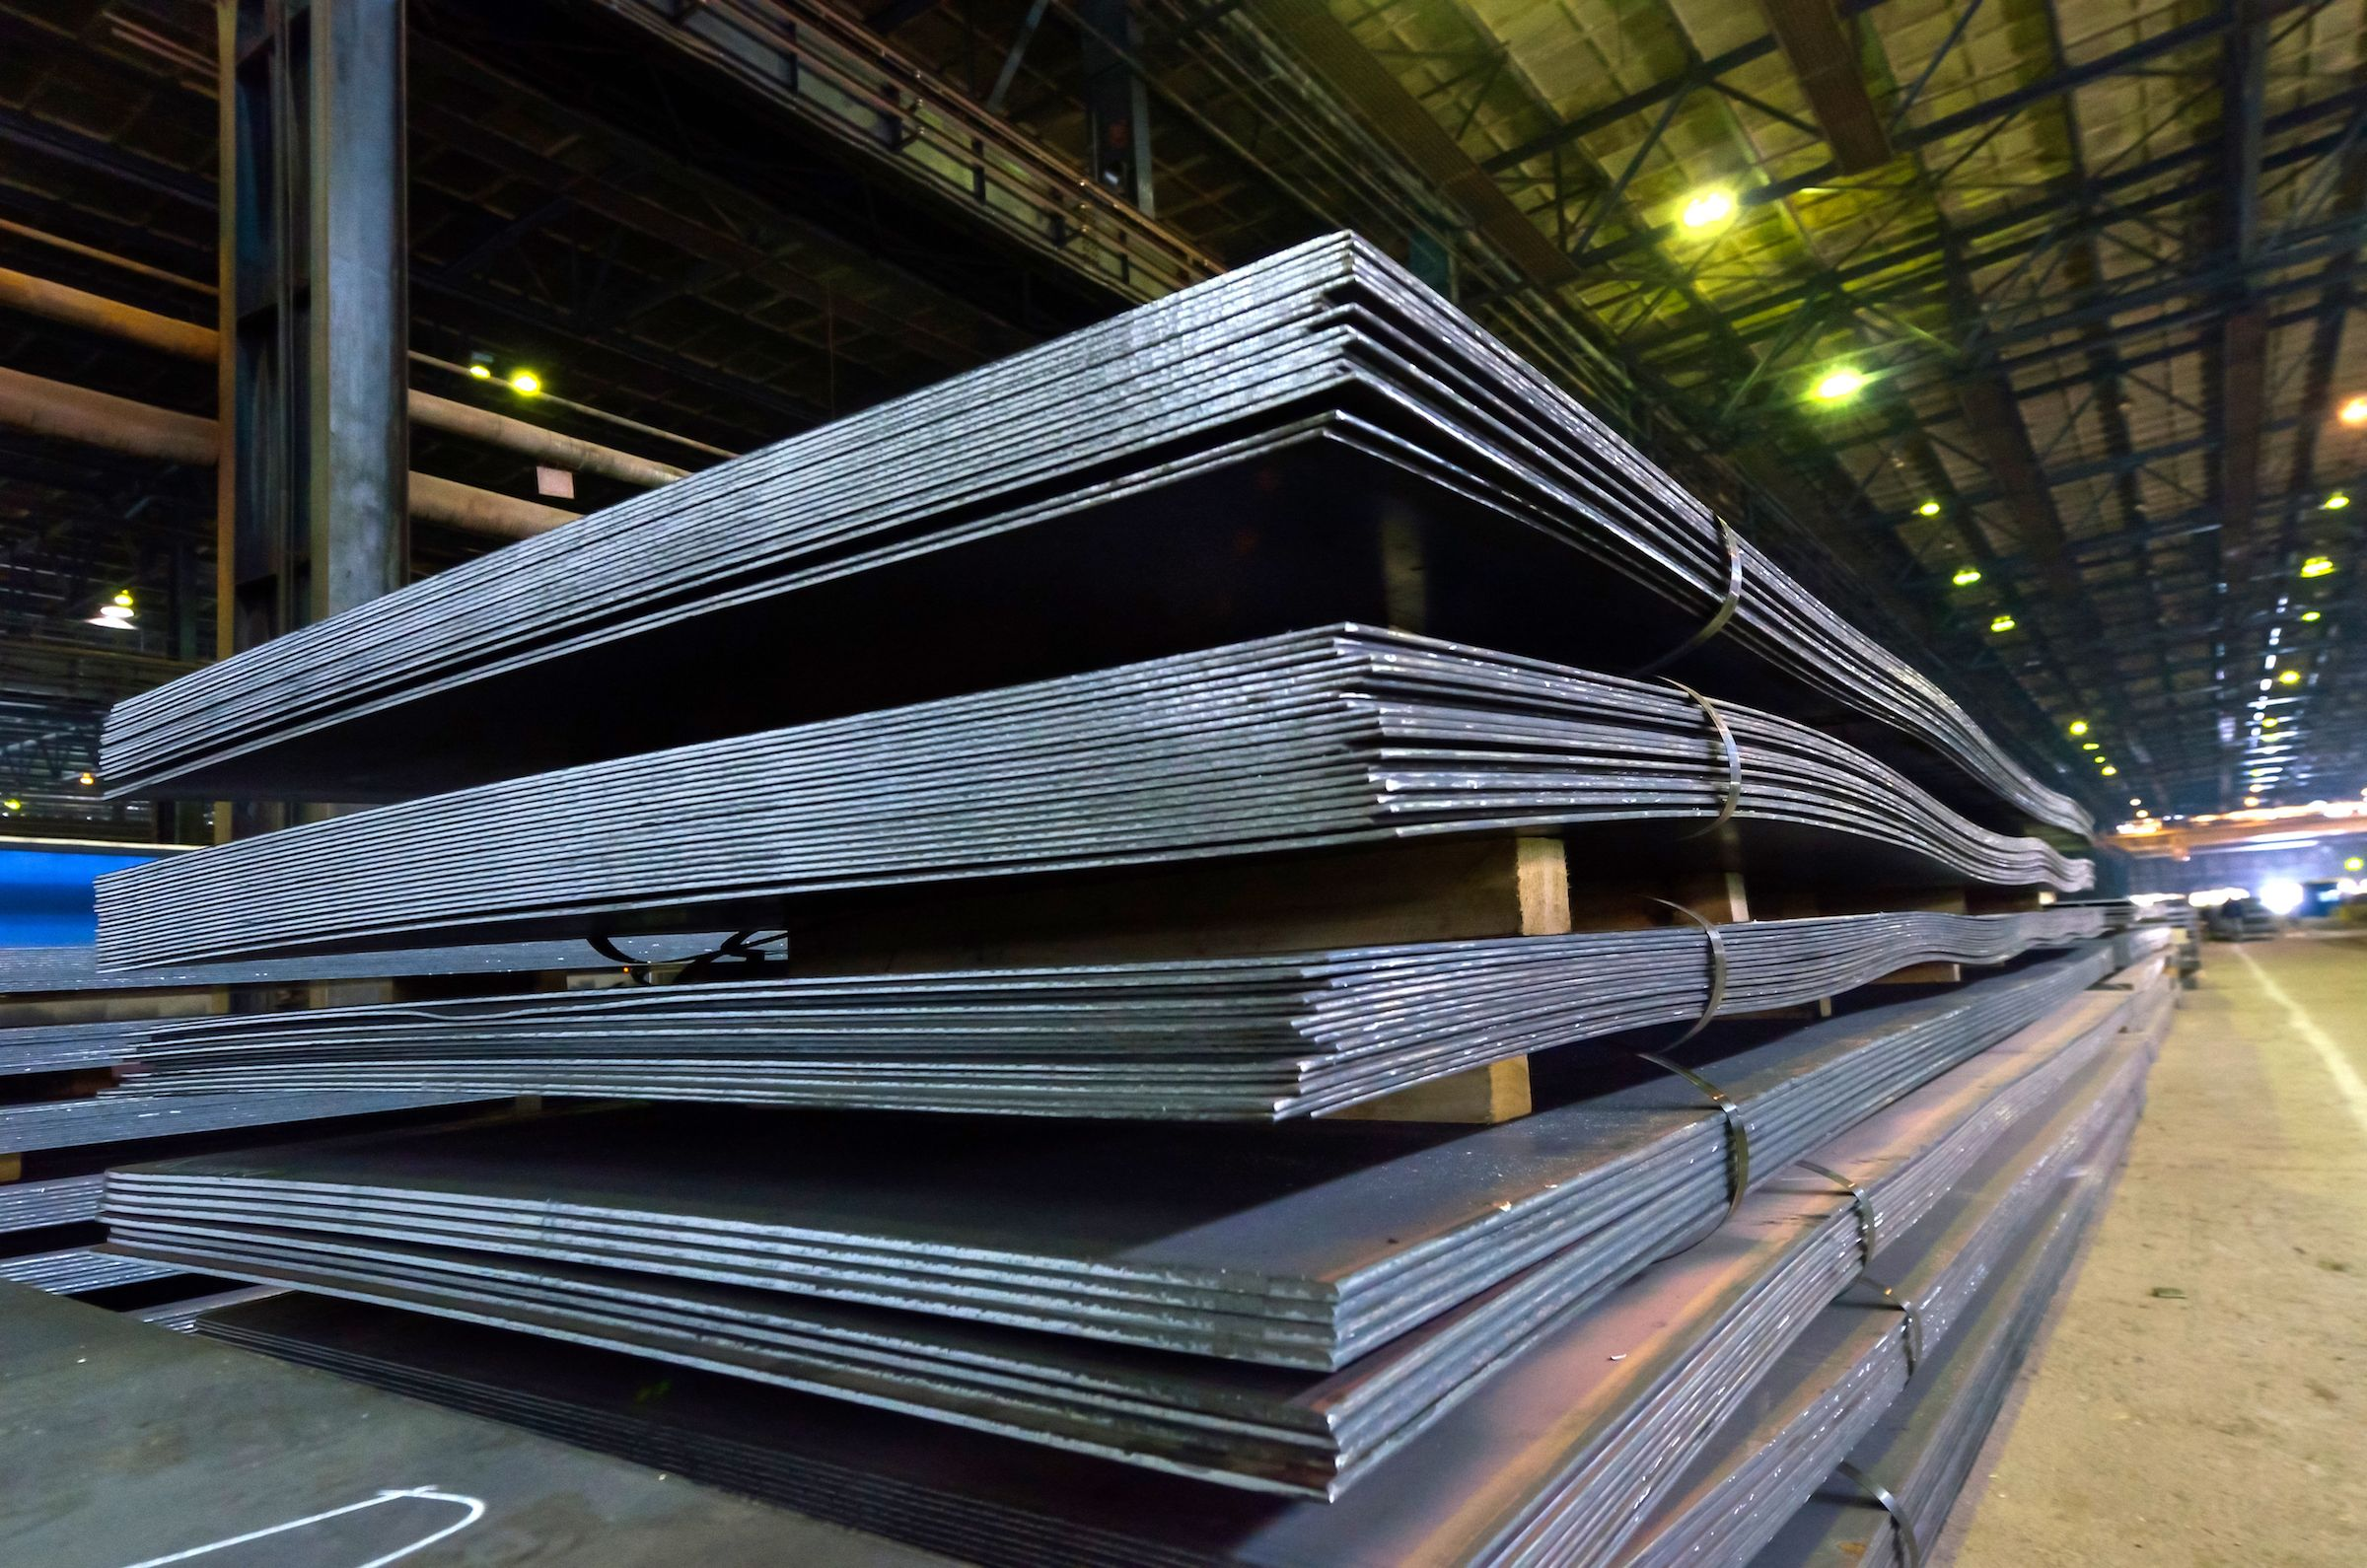 During the last 100 years of development and applications, steel has proven itself to be an effective material of choice for vehicle body structures